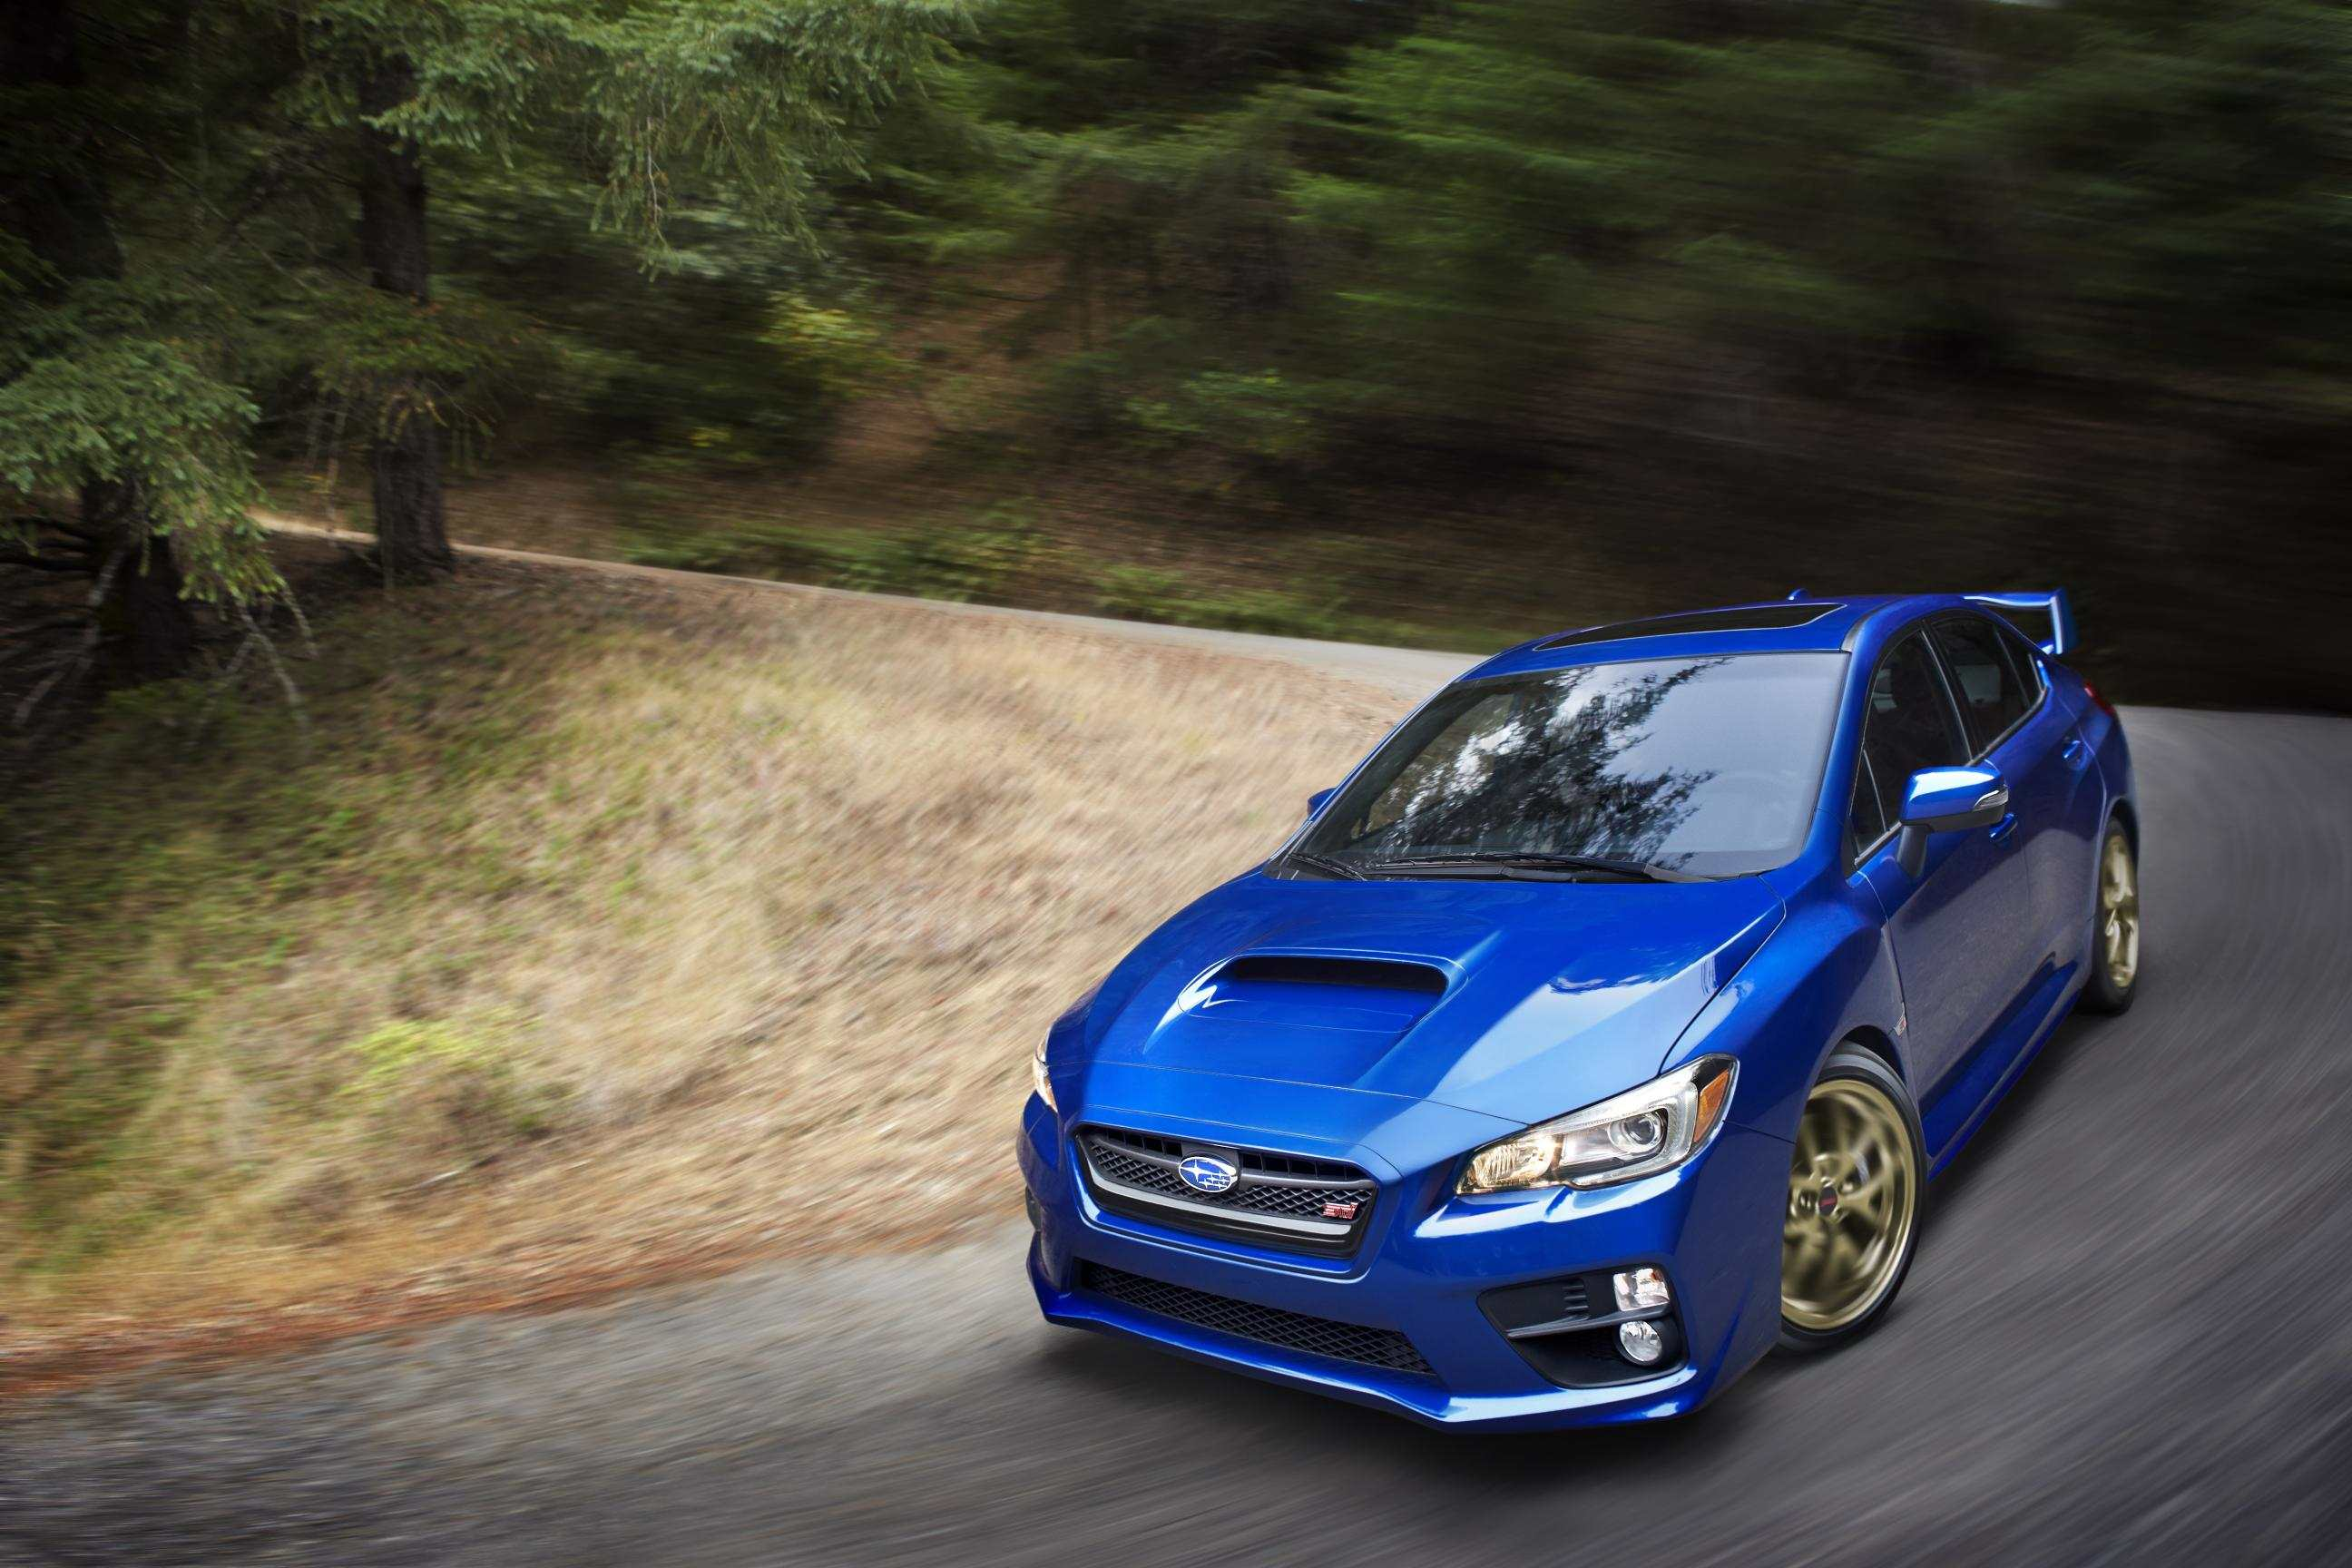 Subaru WRX STI Pricing Revealed: Latest News